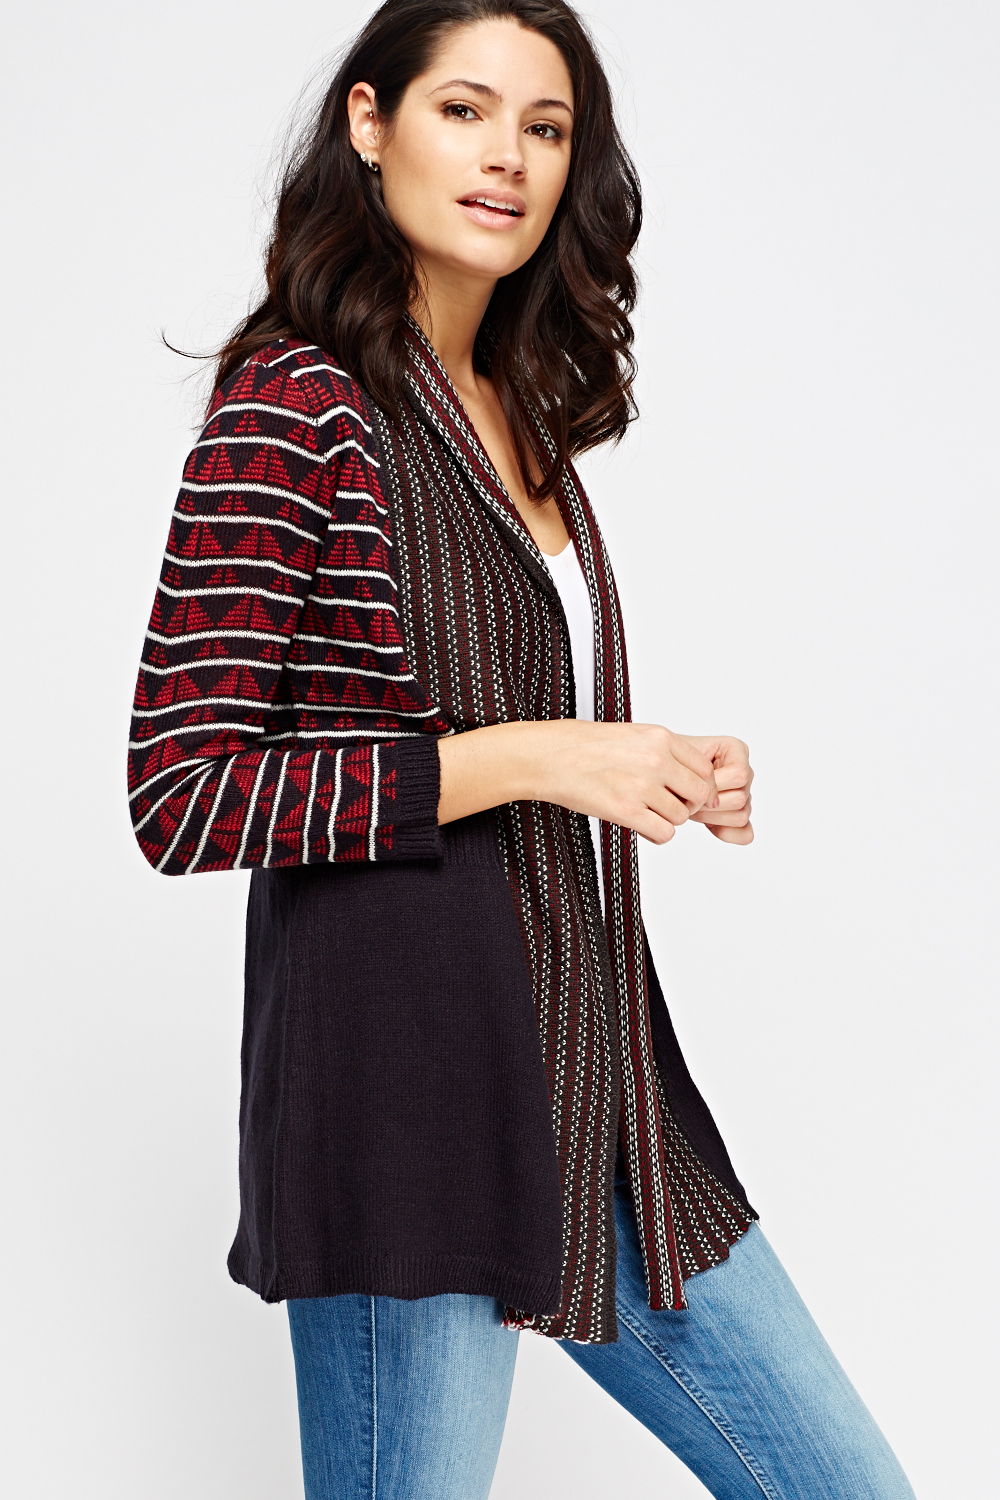 Aztec Print Sweaters. Clothing. Women. Womens Sweaters. Aztec Print Sweaters. Showing 48 of results that match your query. Search Product Result. Product - Premium Geometric Aztec Print Open Print Kimono Vest Cardigan Poncho Sweater Top. Product Image. Price $ Product Title.